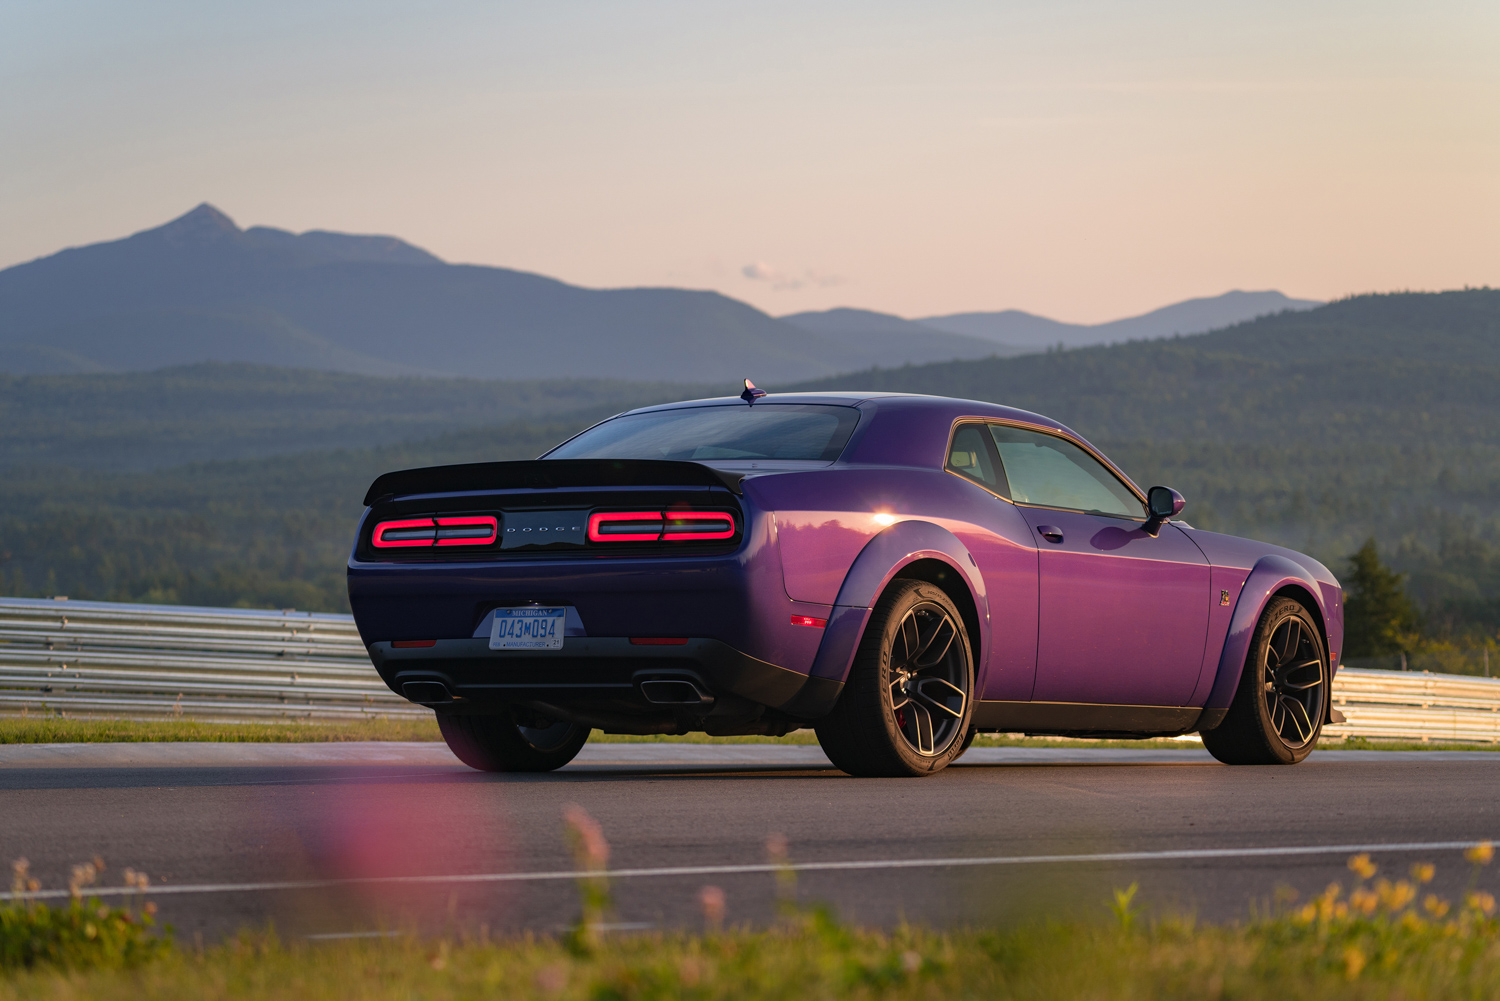 2019 Challenger R/T Scat Pack Widebody rear 3/4 sunset